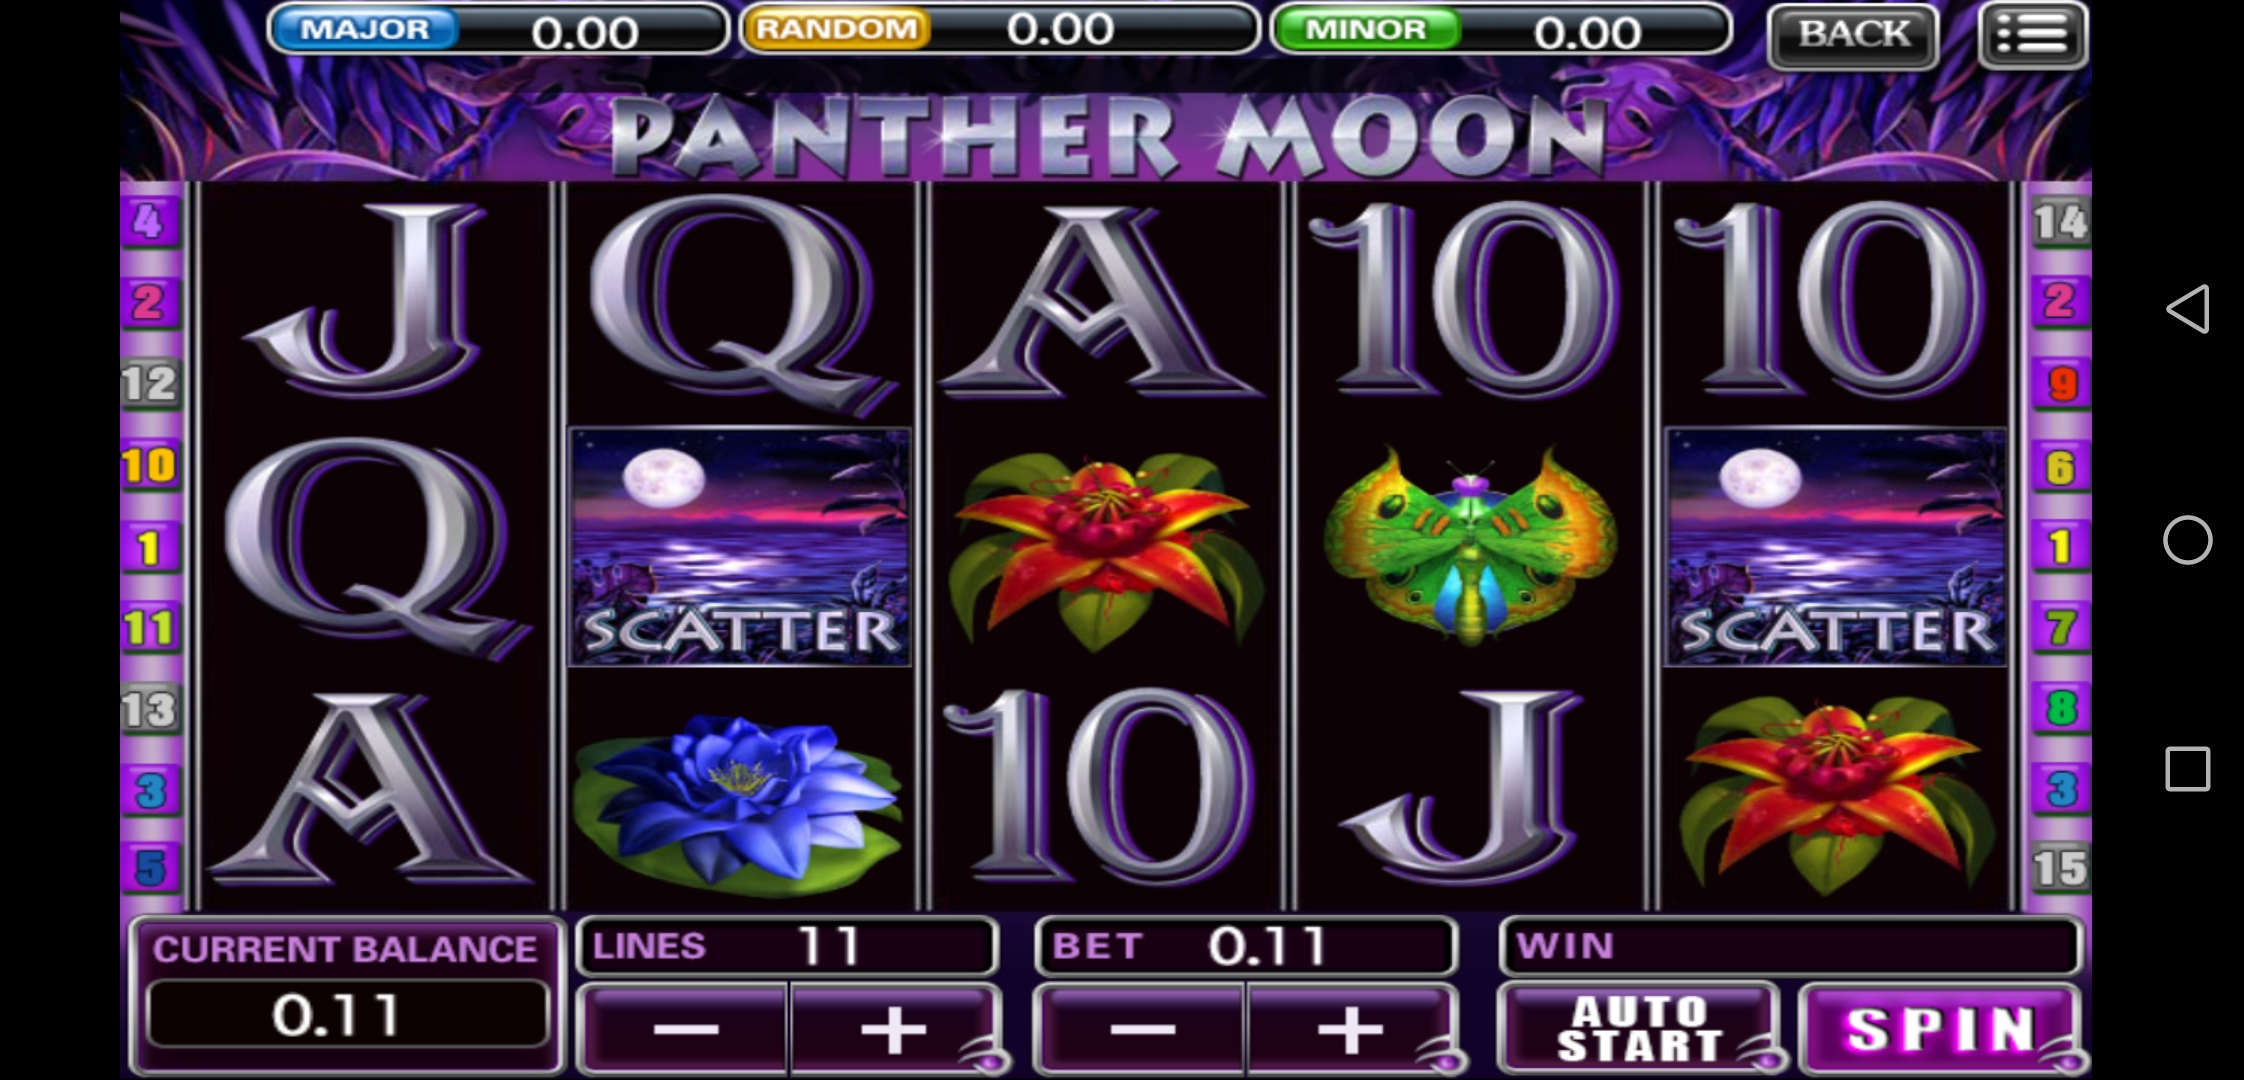 Overview by Liveslot77 for Panther Moon Slot Machine in XE 88